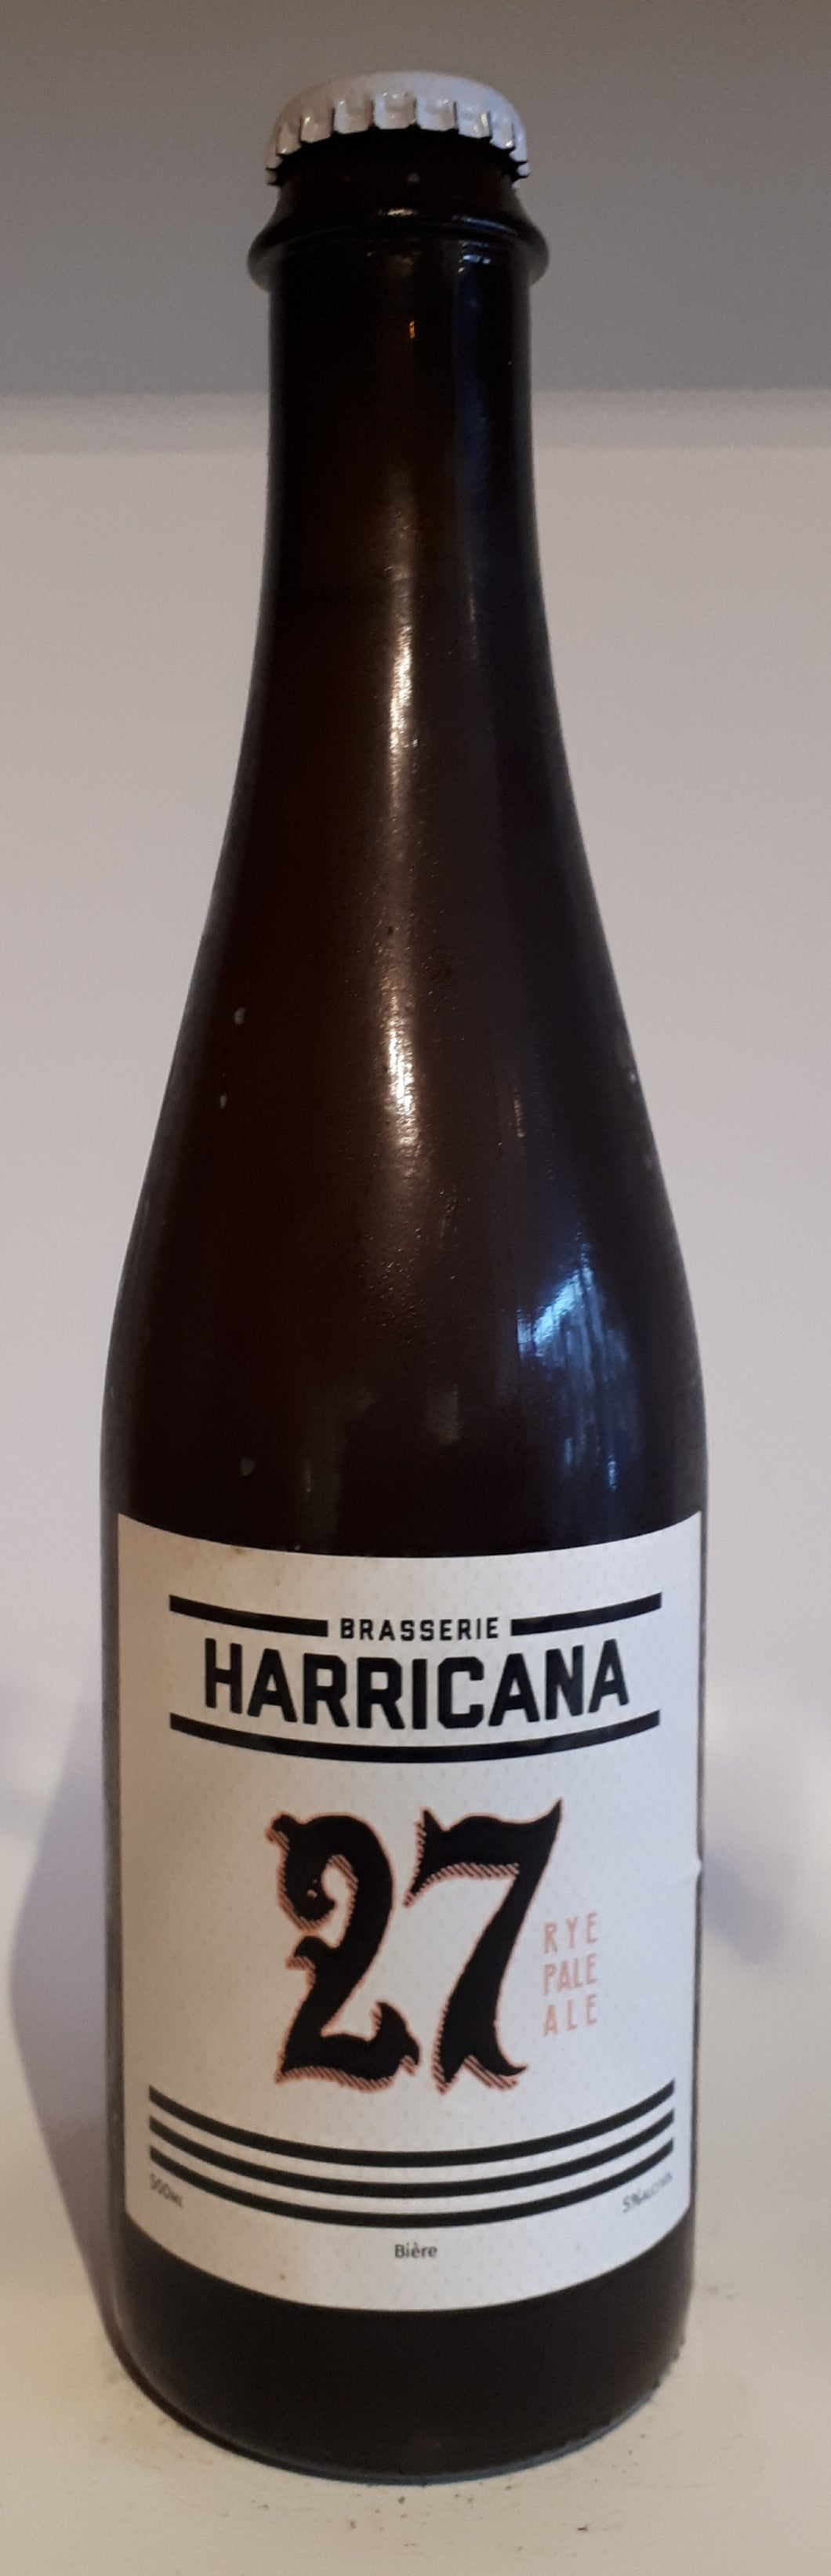 Brasserie Harricana La 27 500ml